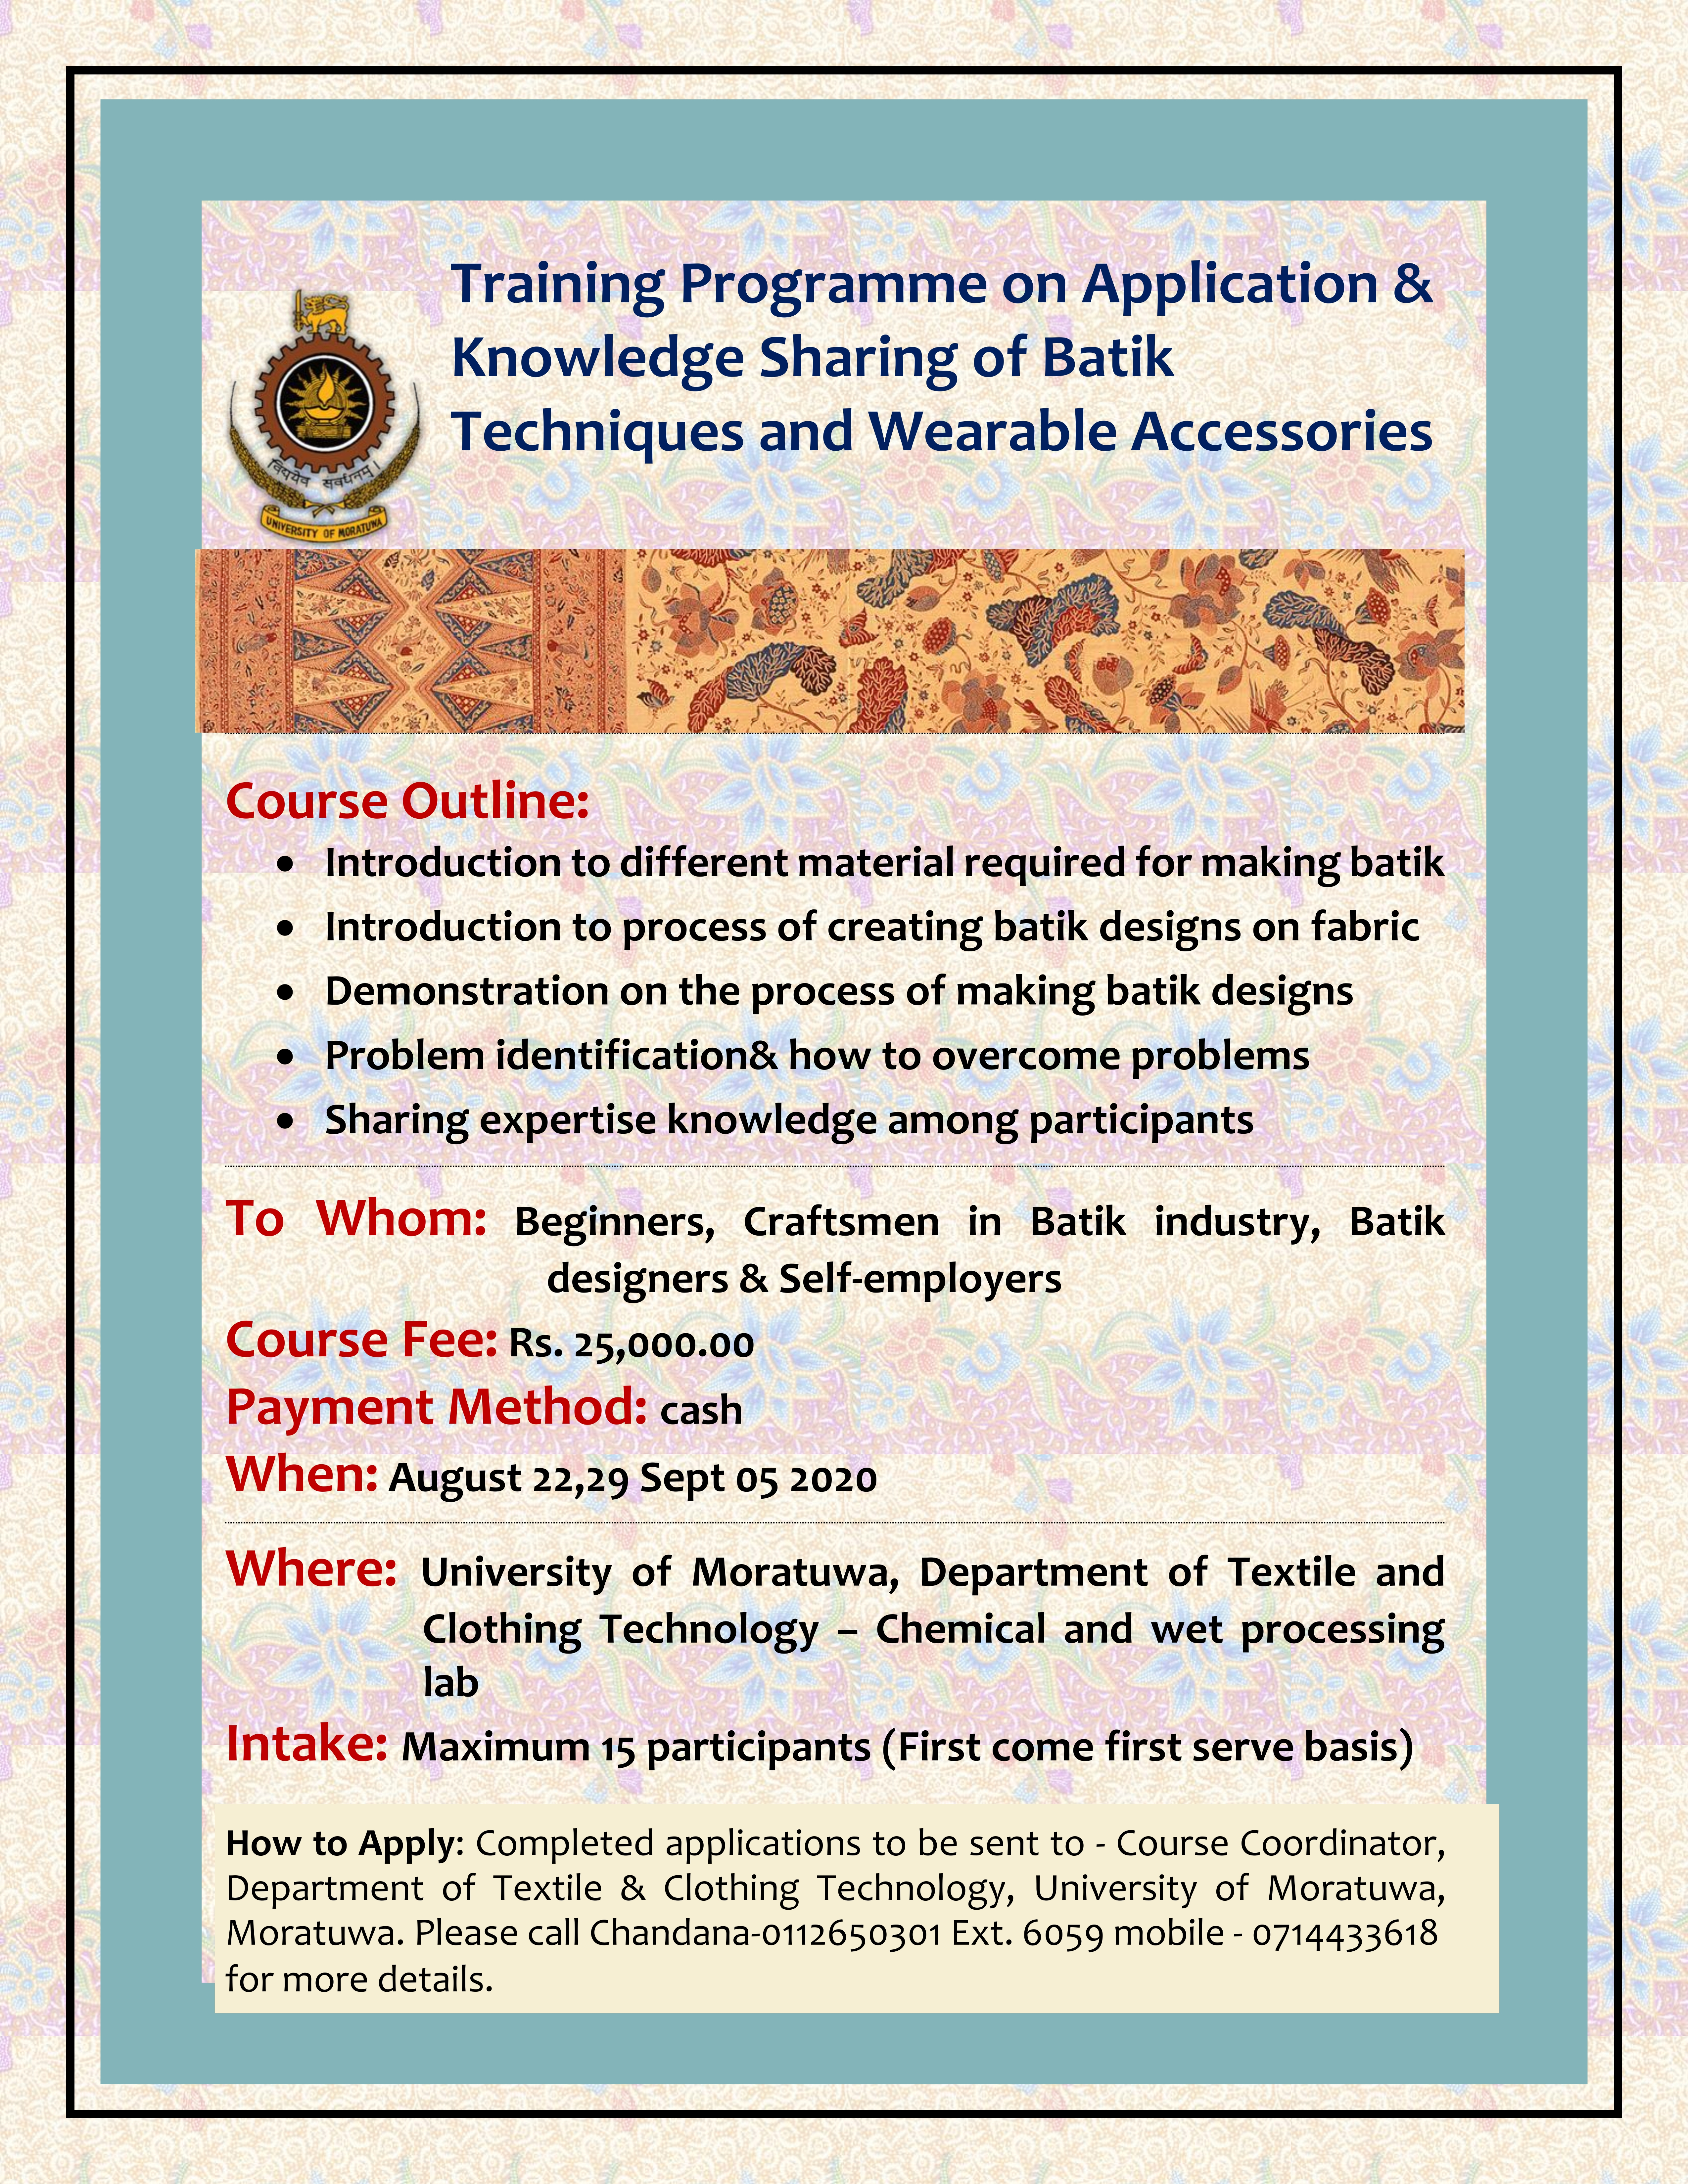 Traning Program on Application & Knowledge Sharing of Batik Techniques and Wearable Accessories